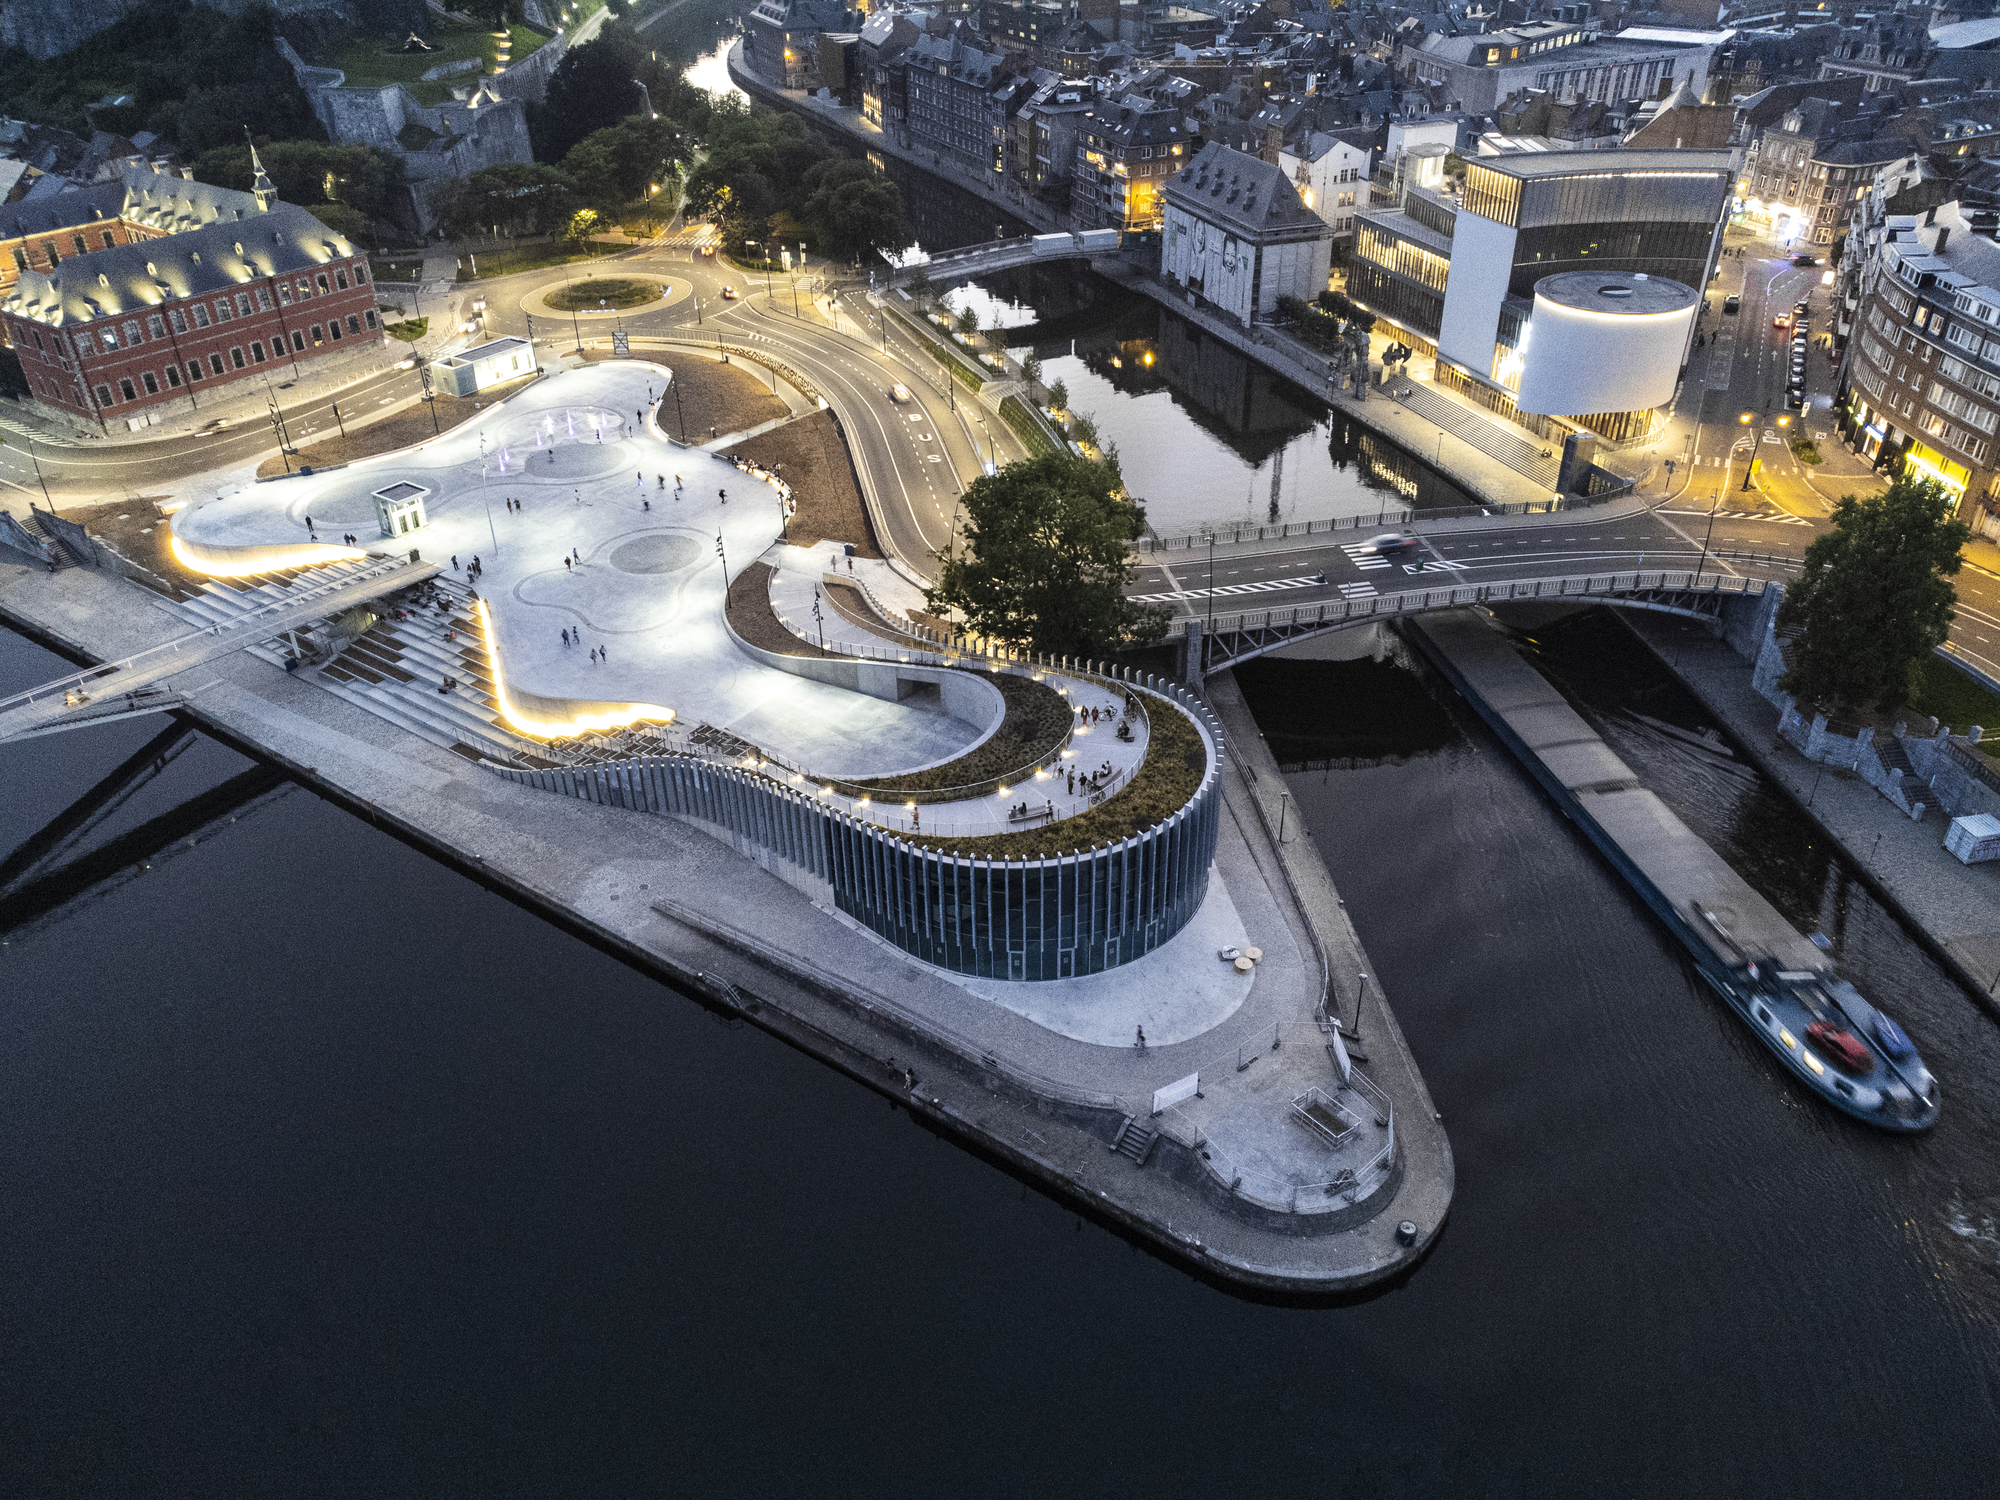 3XN Completes Organically-Shaped Exhibition Space in Belgium